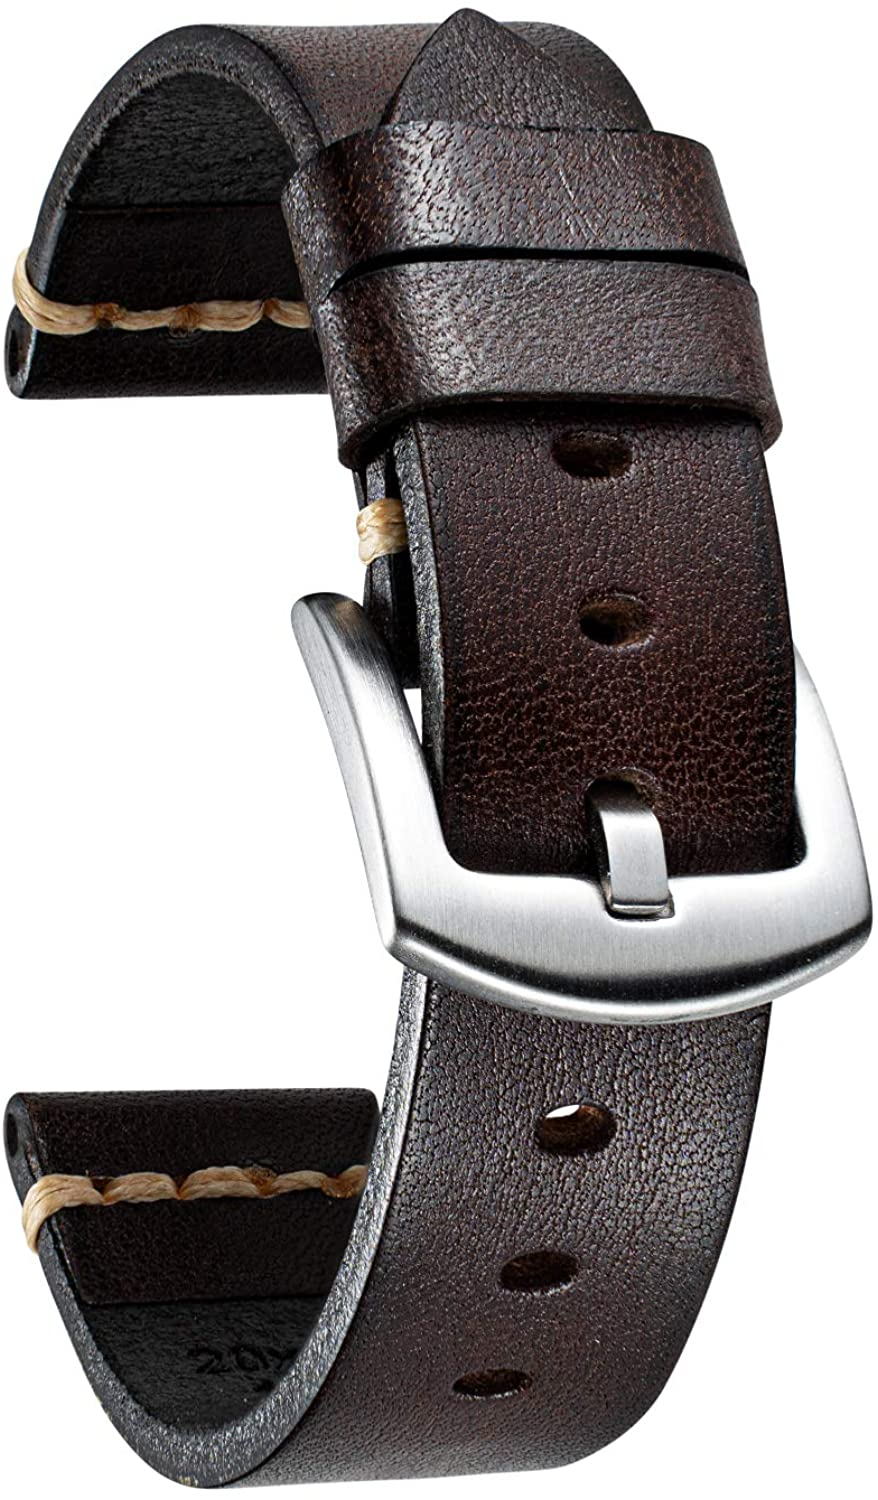 BINLUN Replacement Vintage Rubbing Vegetable Tanned Leather Watch Strap in 5 Sizes (18/20/22/24/26mm) and 7 Colors with 2-Colors Stainless Pin Buckle and Adjustment Tool